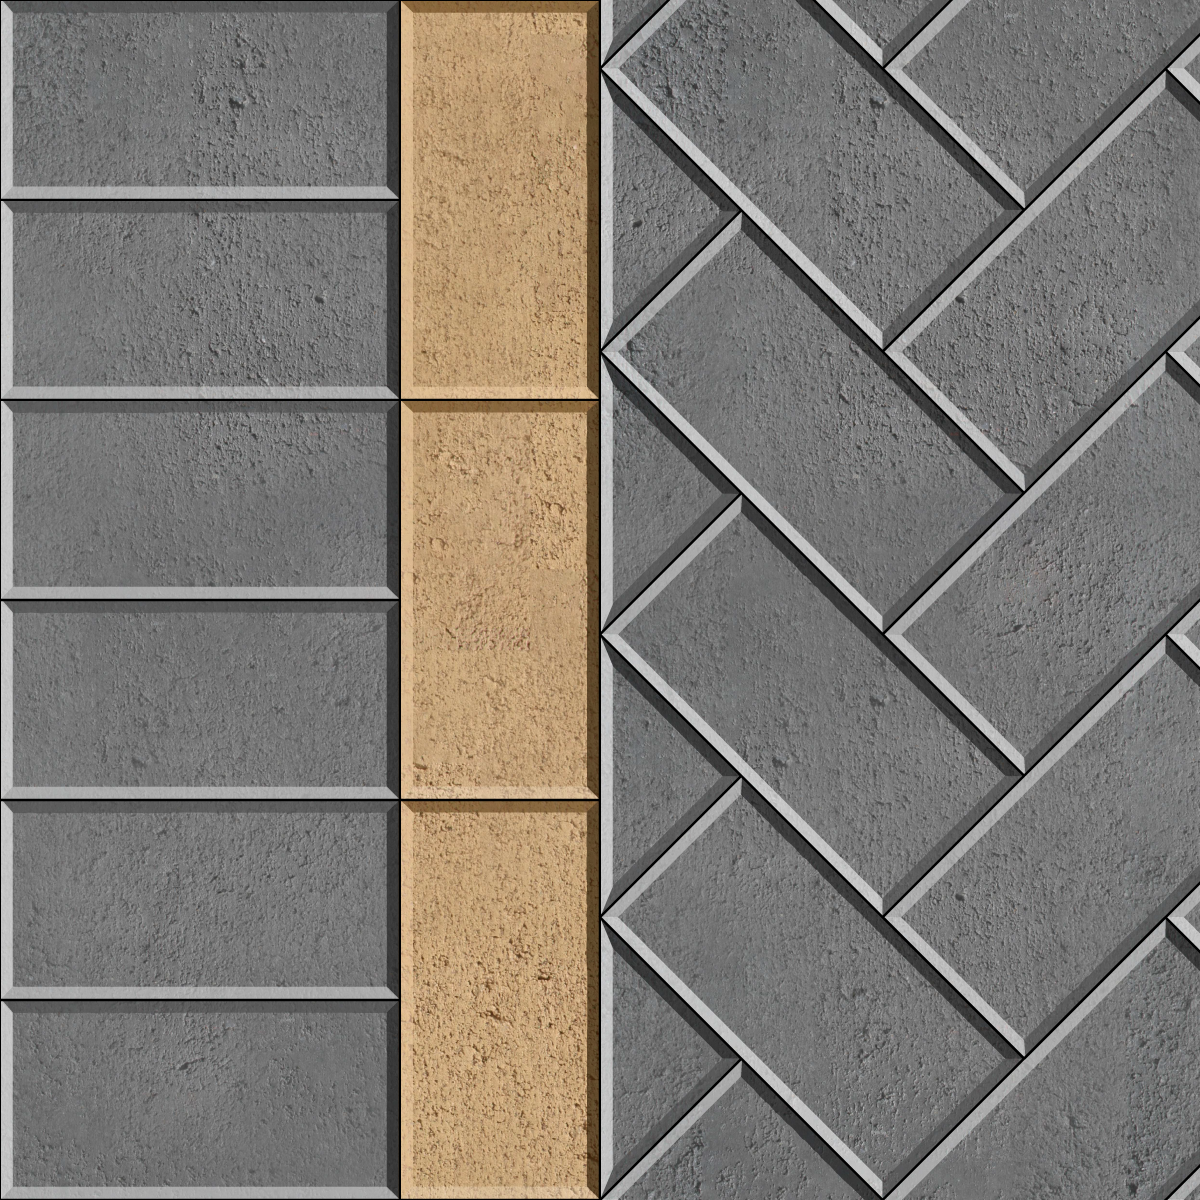 45 Herringbone with contrasting stretcher inlay and header brick paver